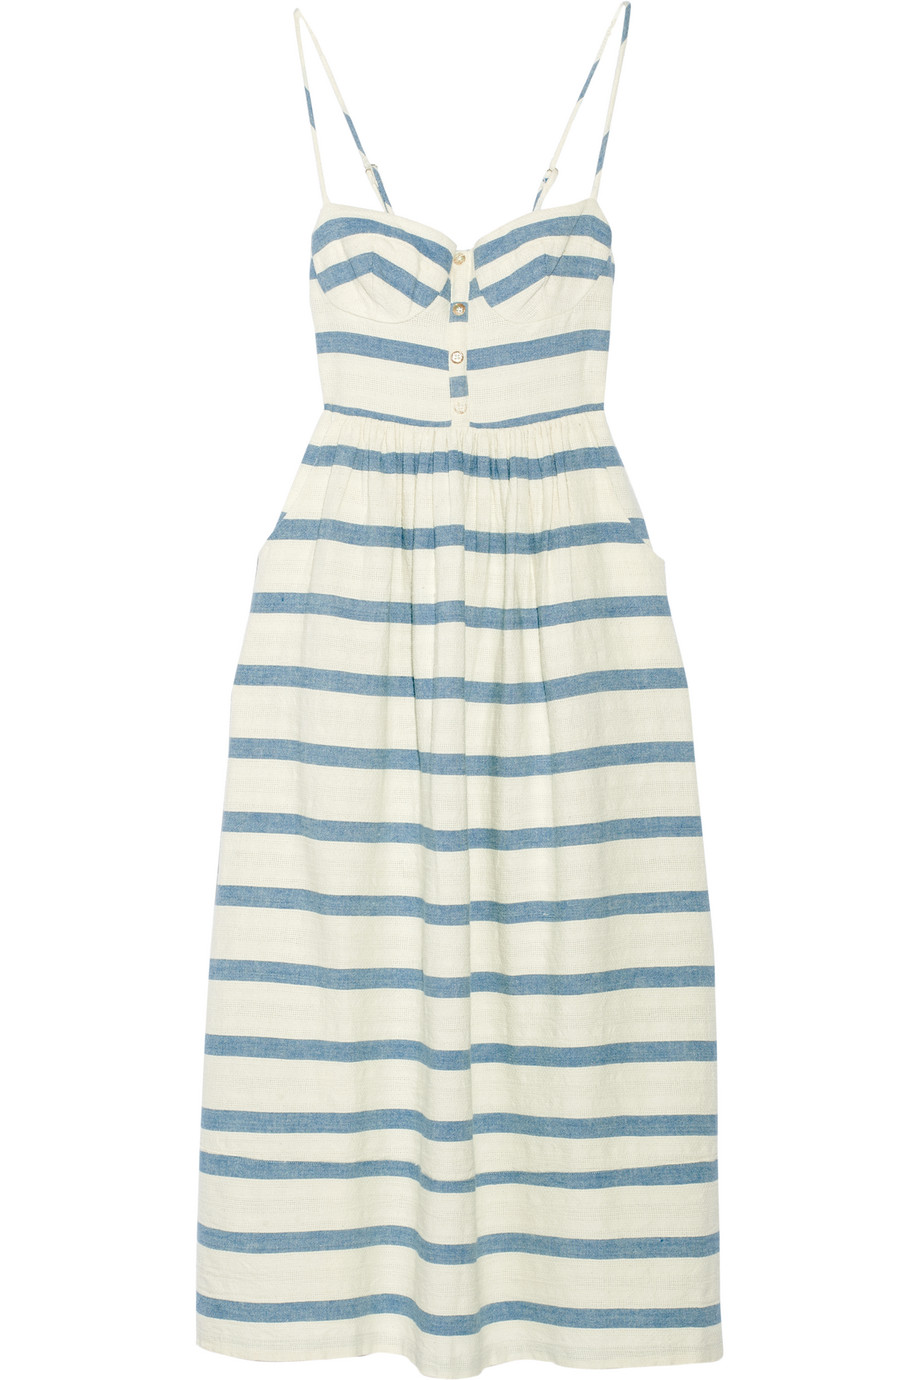 Mara Hoffman Striped Cotton Midi Dress, Off-White, Women's